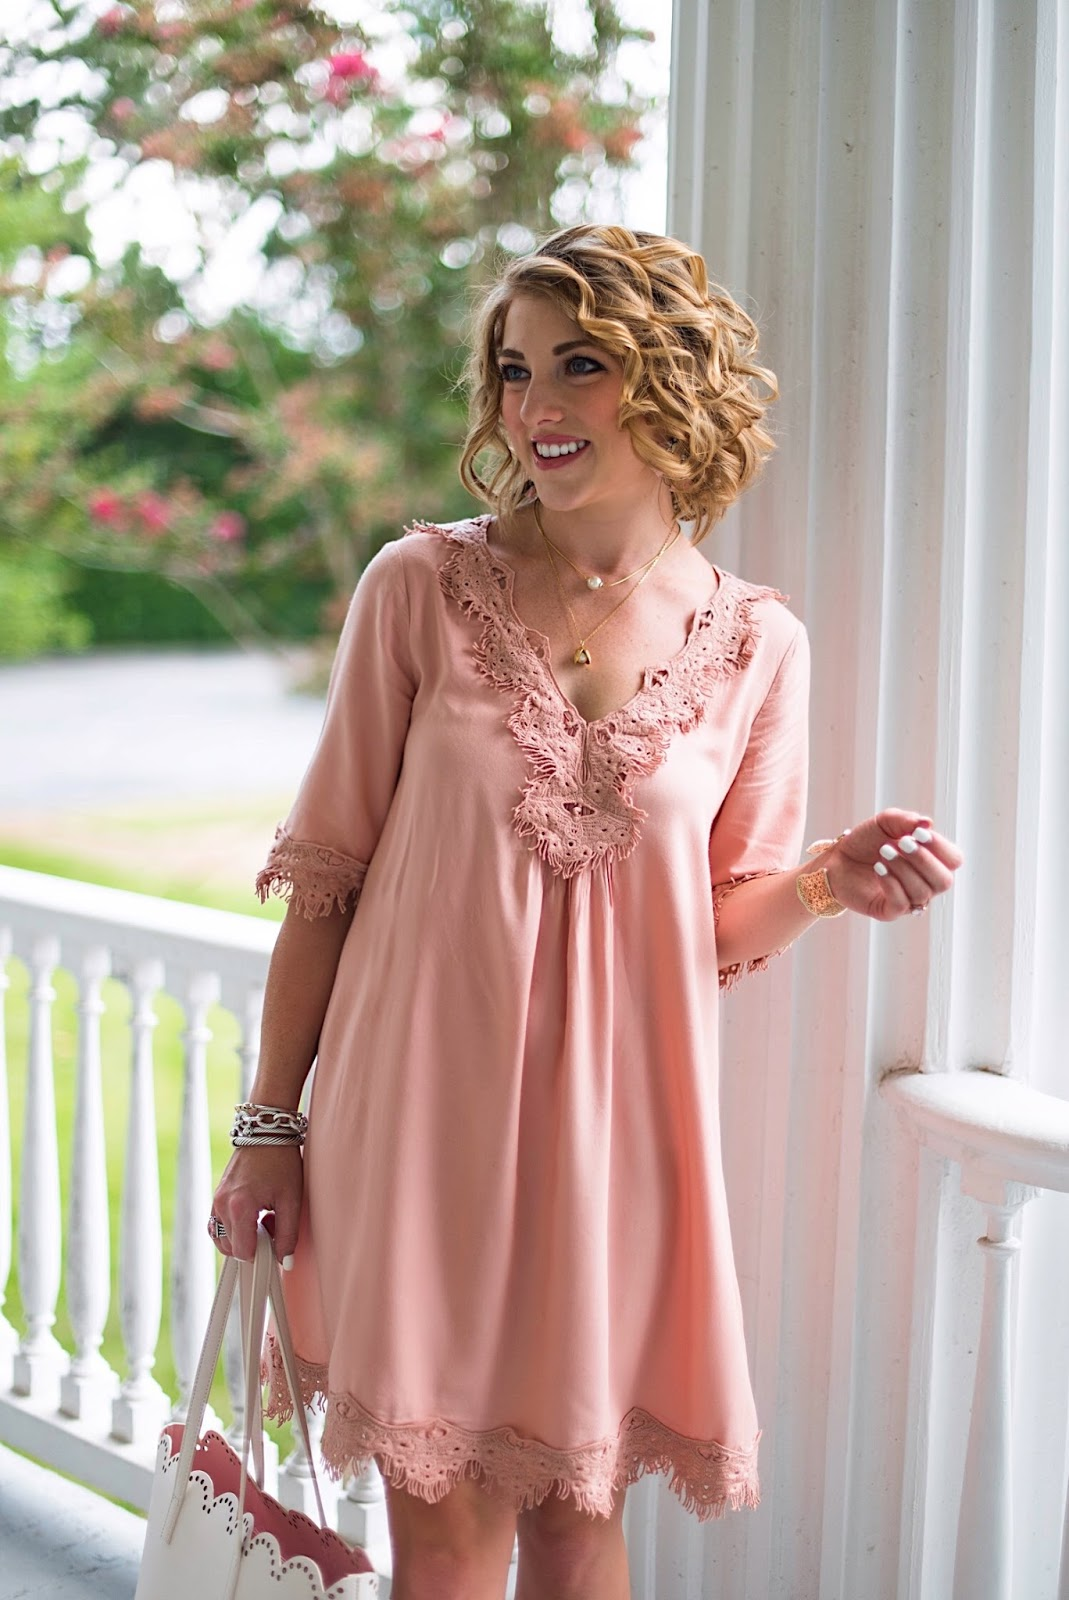 Lace Trim Dress - Click through to see more on Something Delightful Blog!